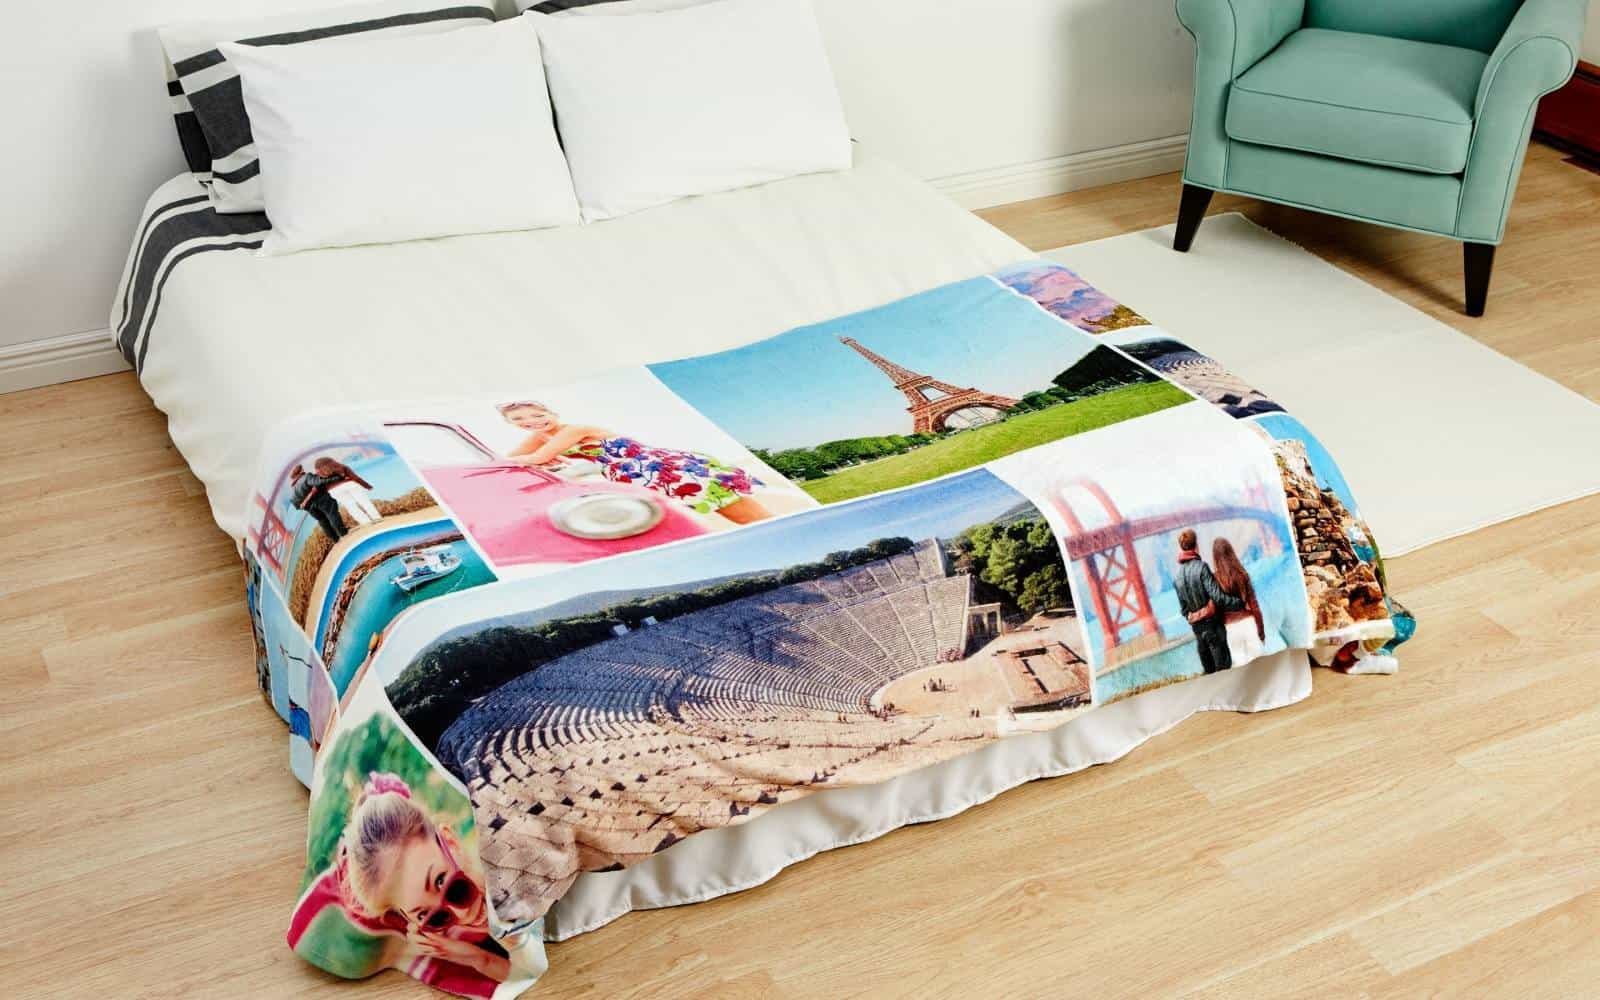 printed photo blanket from Collage.Com